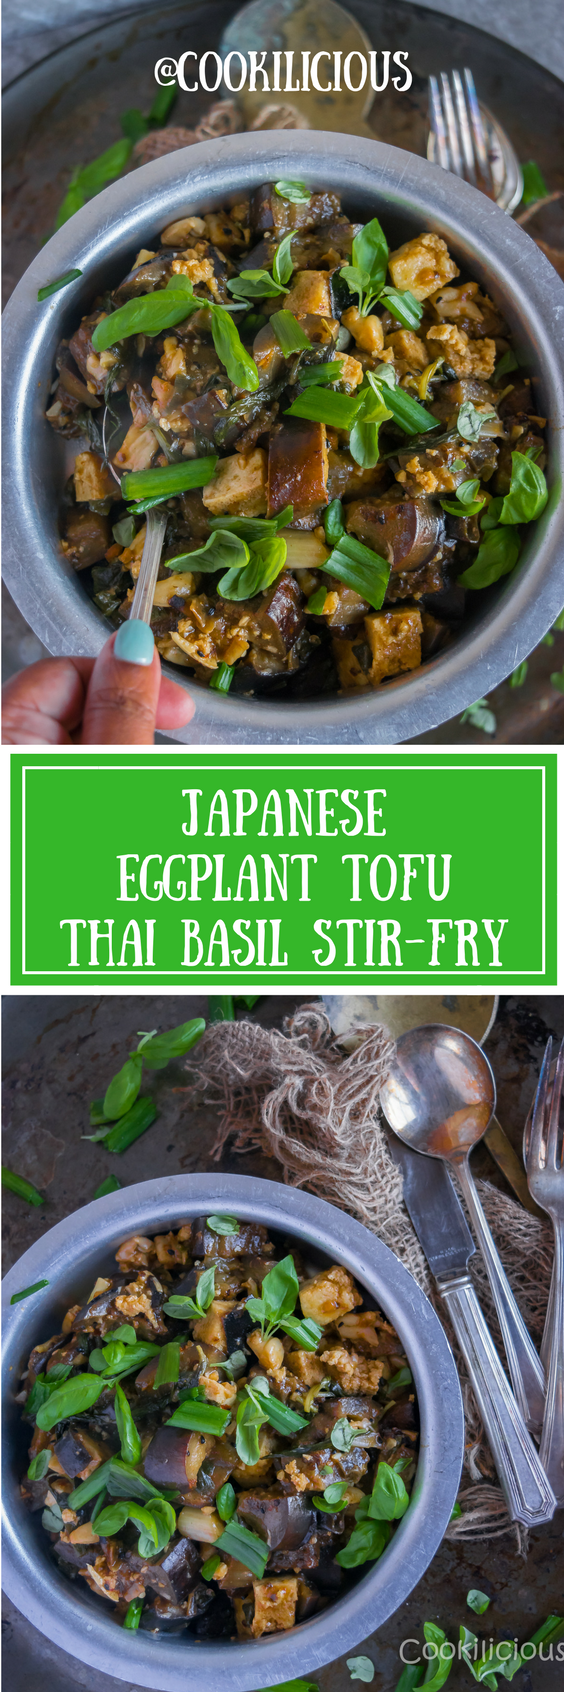 Japanese Eggplant Tofu Thai Basil Stir-fry is a comforting & flavorful dish that can be made in just few minutes! Thai basil, tofu & Japanese eggplant make a great combination making it an ideal meal for vegetarians/vegans. Cooked street style, this stir-fry is seasoned with sauces & hard to resist! via @cookiliciousveg